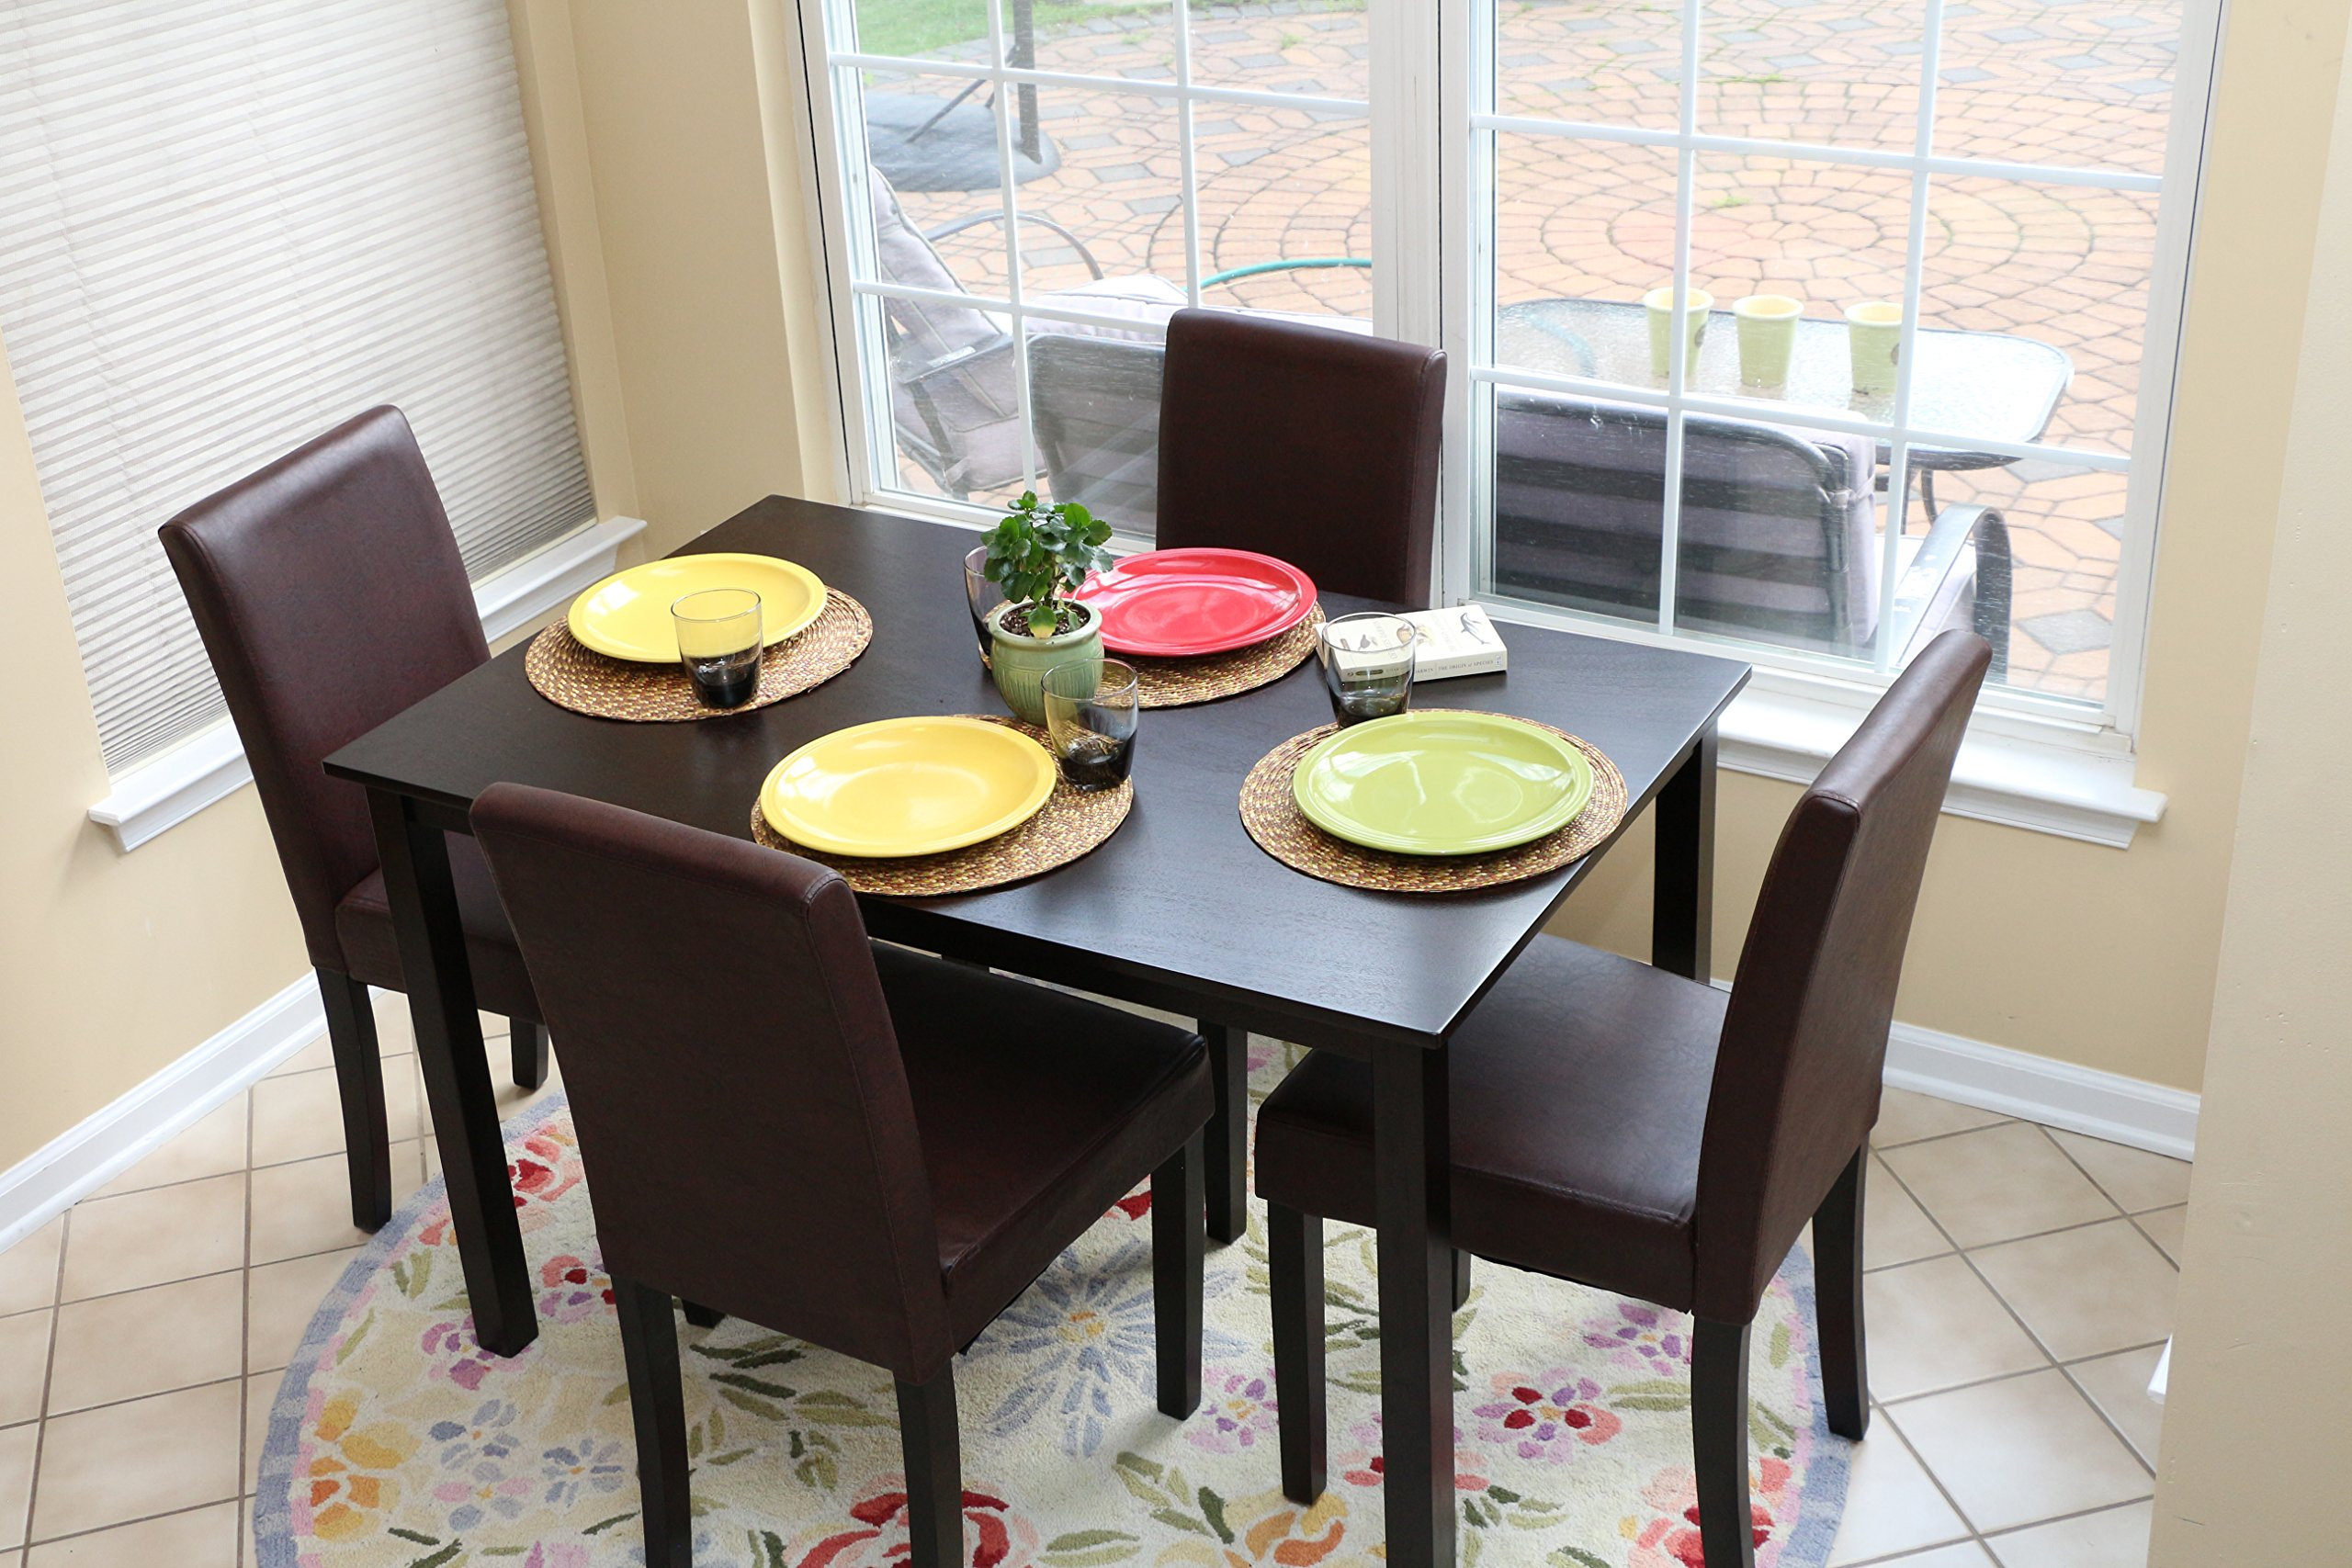 5 PC Espresso Leather Brown 4 Person Table and Chairs Brown Dining Dinette - Espresso Brown Parson Chair